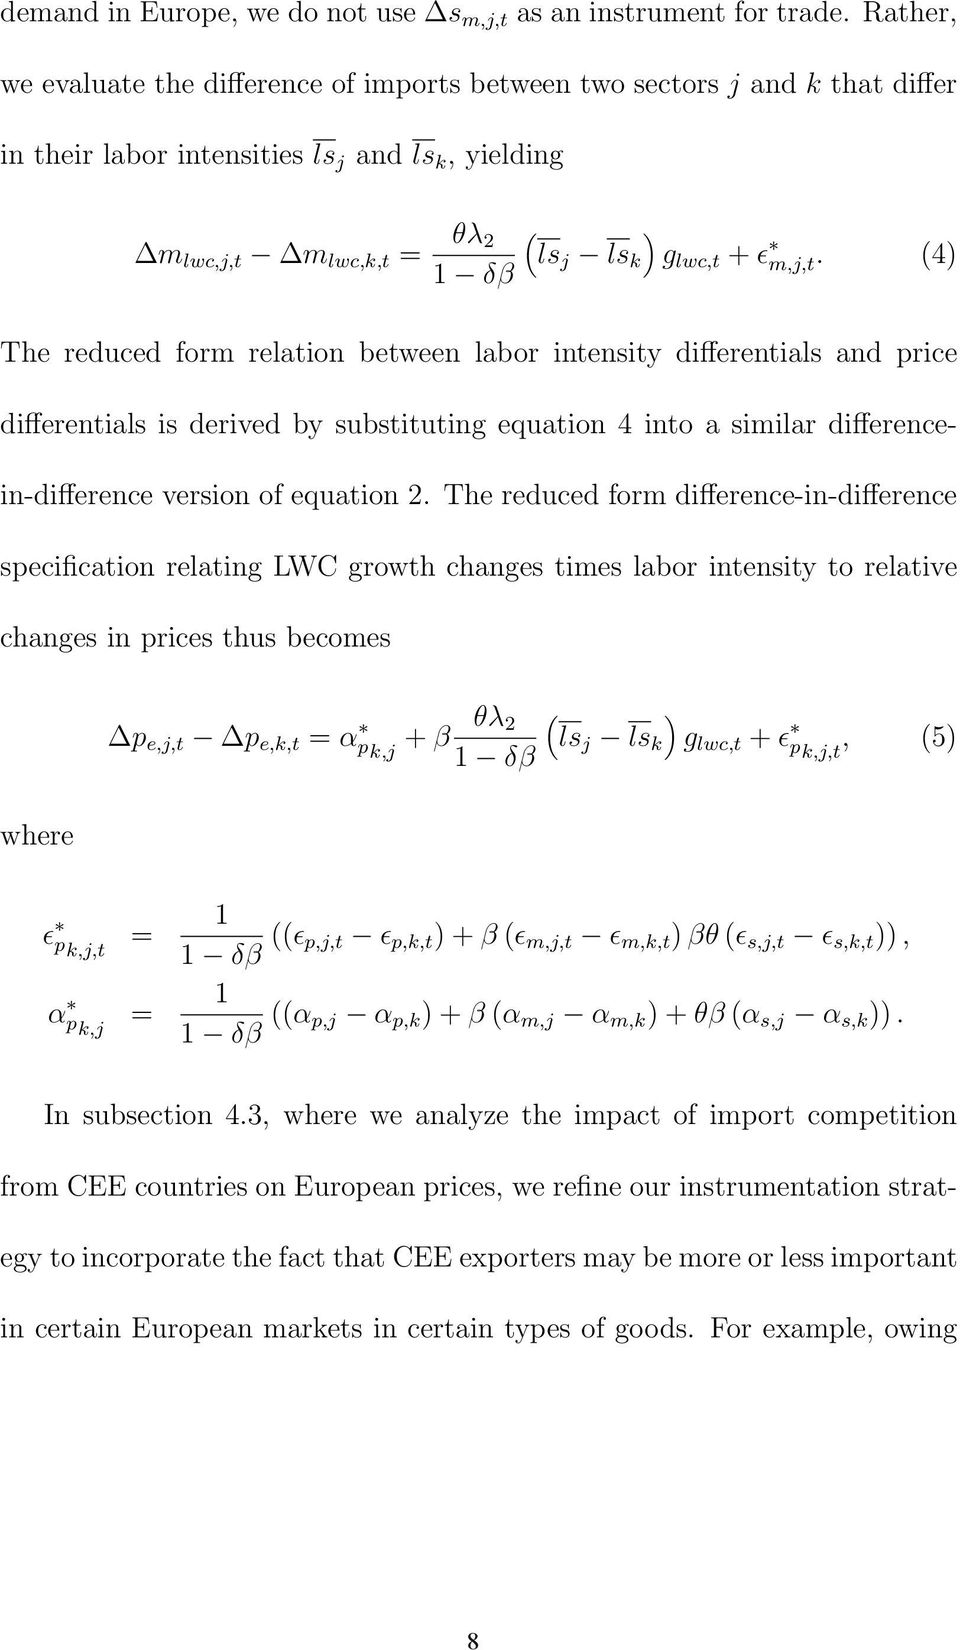 (4) The reduced form relation between labor intensity differentials and price differentials is derived by substituting equation 4 into a similar differencein-difference version of equation 2.